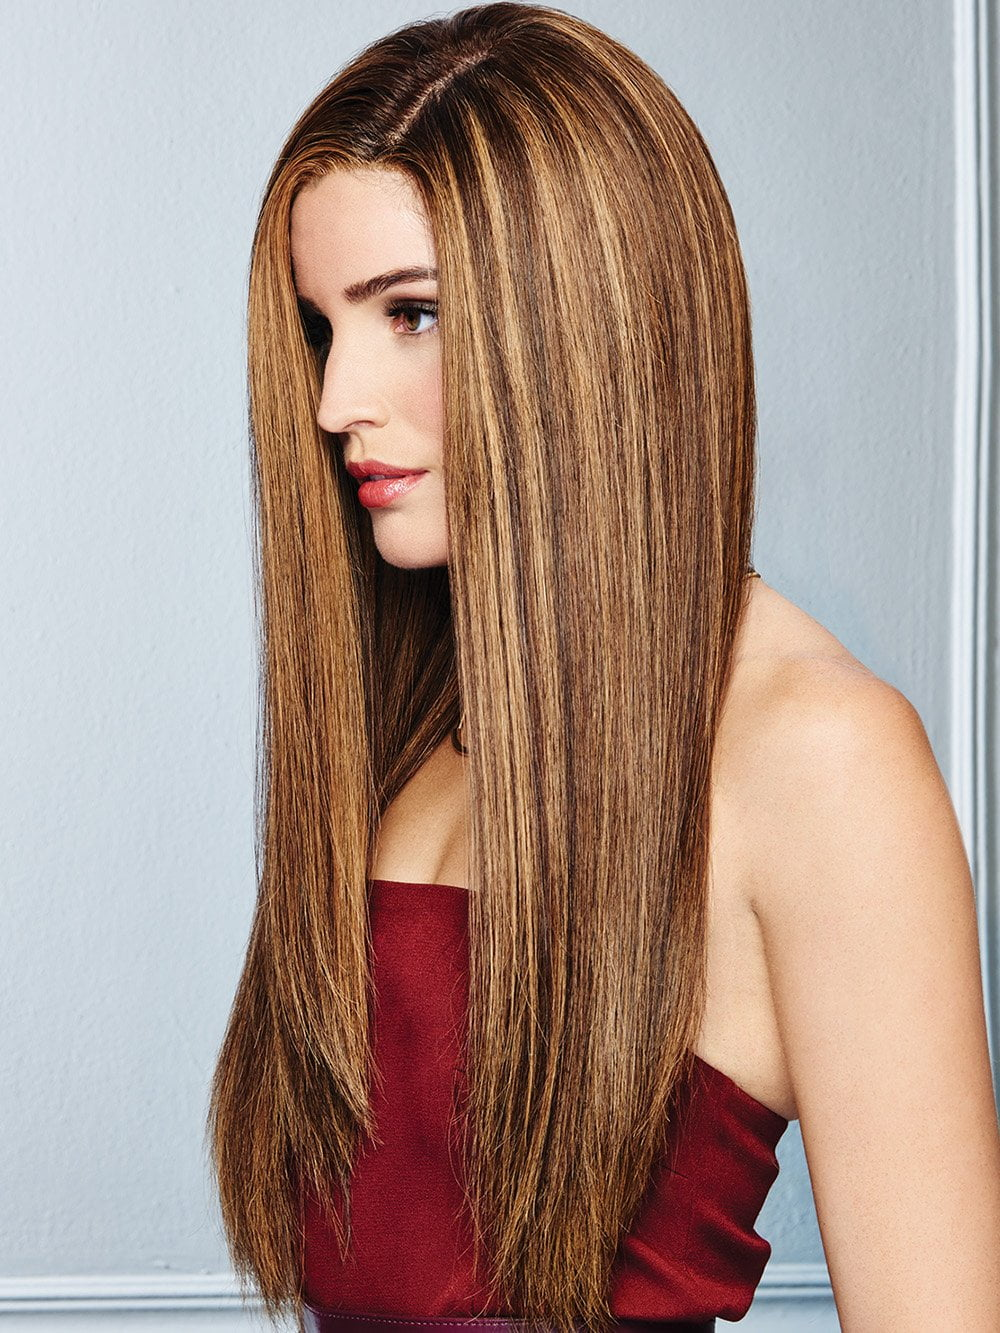 Long barely there layers add flow and movement to this superwoman length